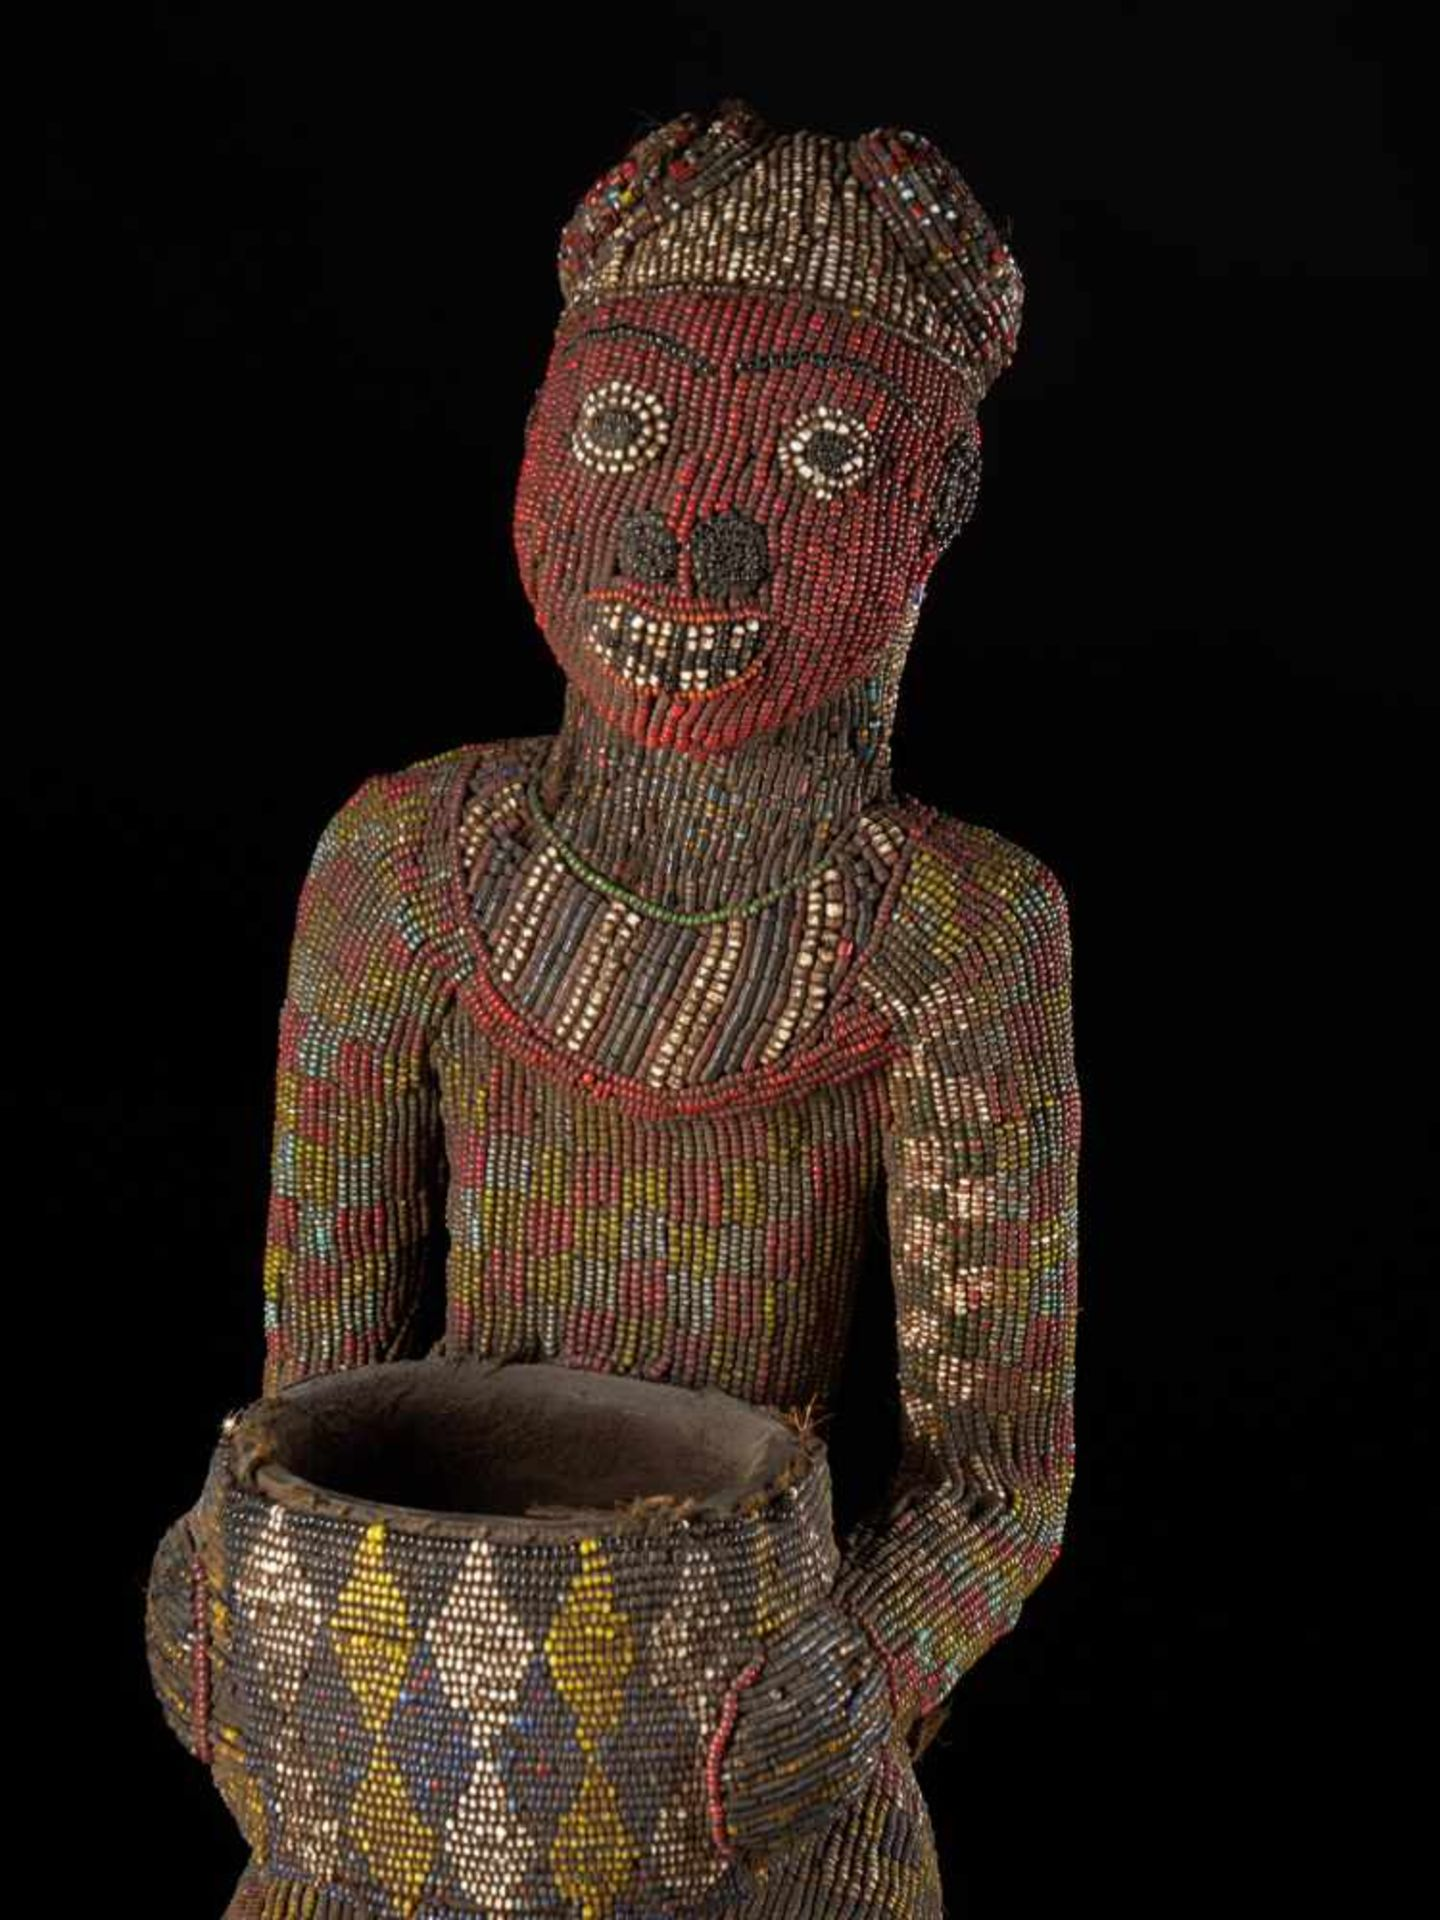 Beaded Figure Of Cupholder - Tribal ArtA beaded figure of a man sitting on a stool, holding a cup. - Bild 5 aus 6